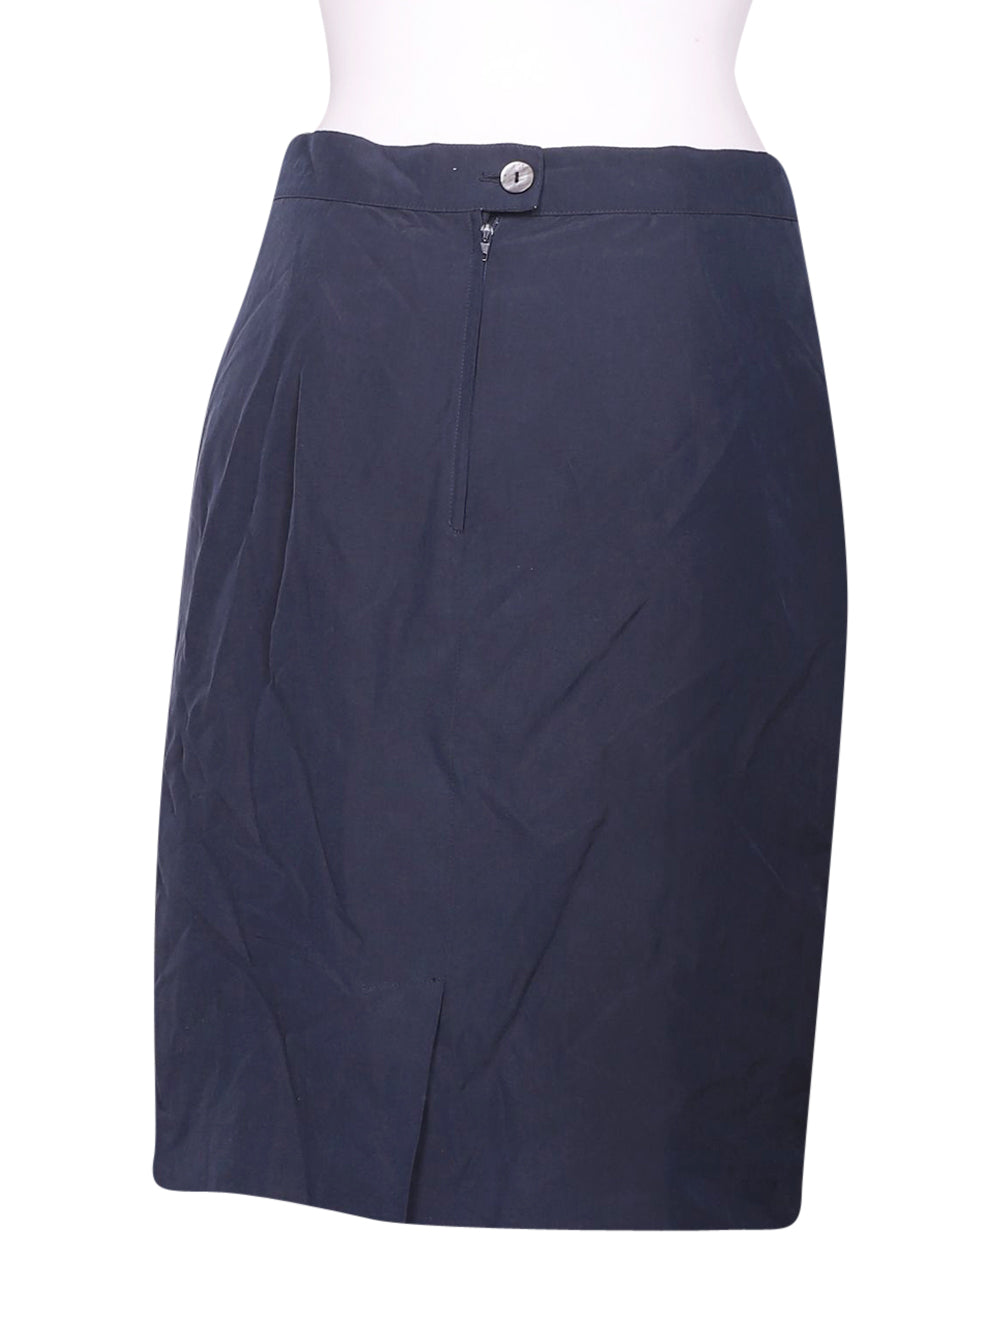 Back photo of Preloved Marella Blue Woman's skirt - size 12/L